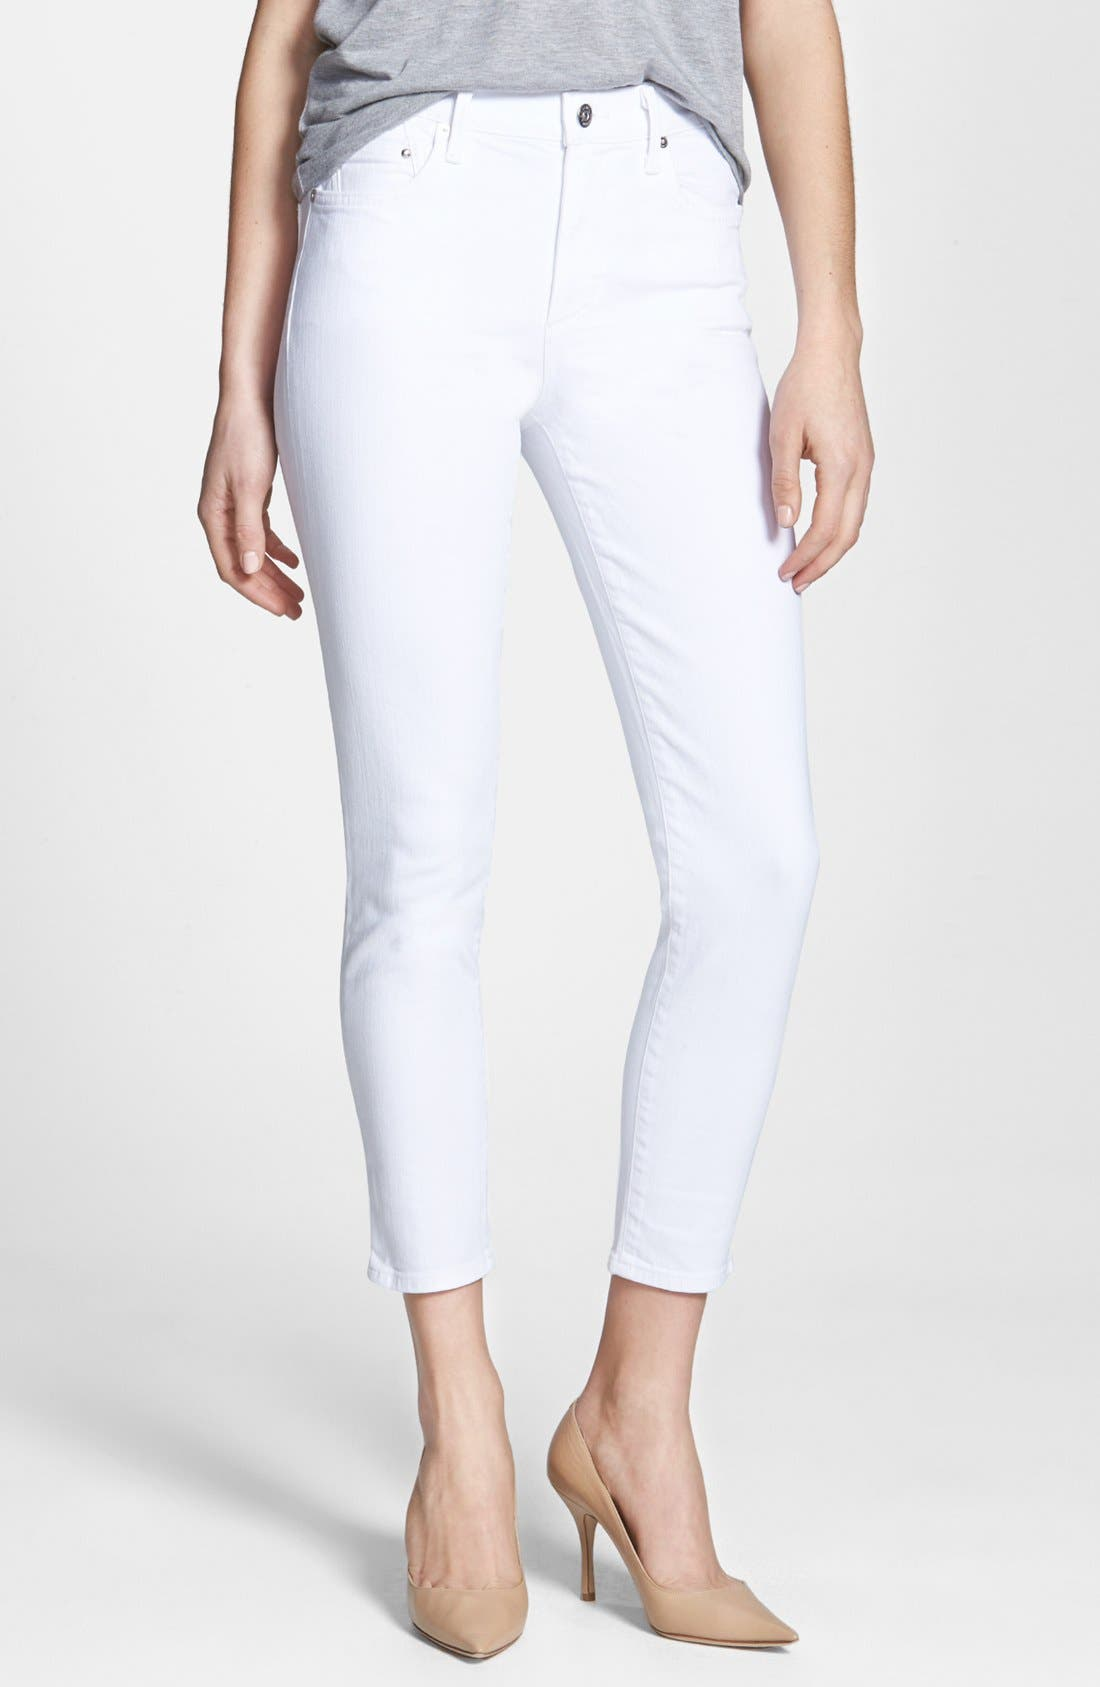 Alternate Image 1 Selected - Citizens of Humanity 'Racer' High Rise Skinny Jeans (Santorini White)